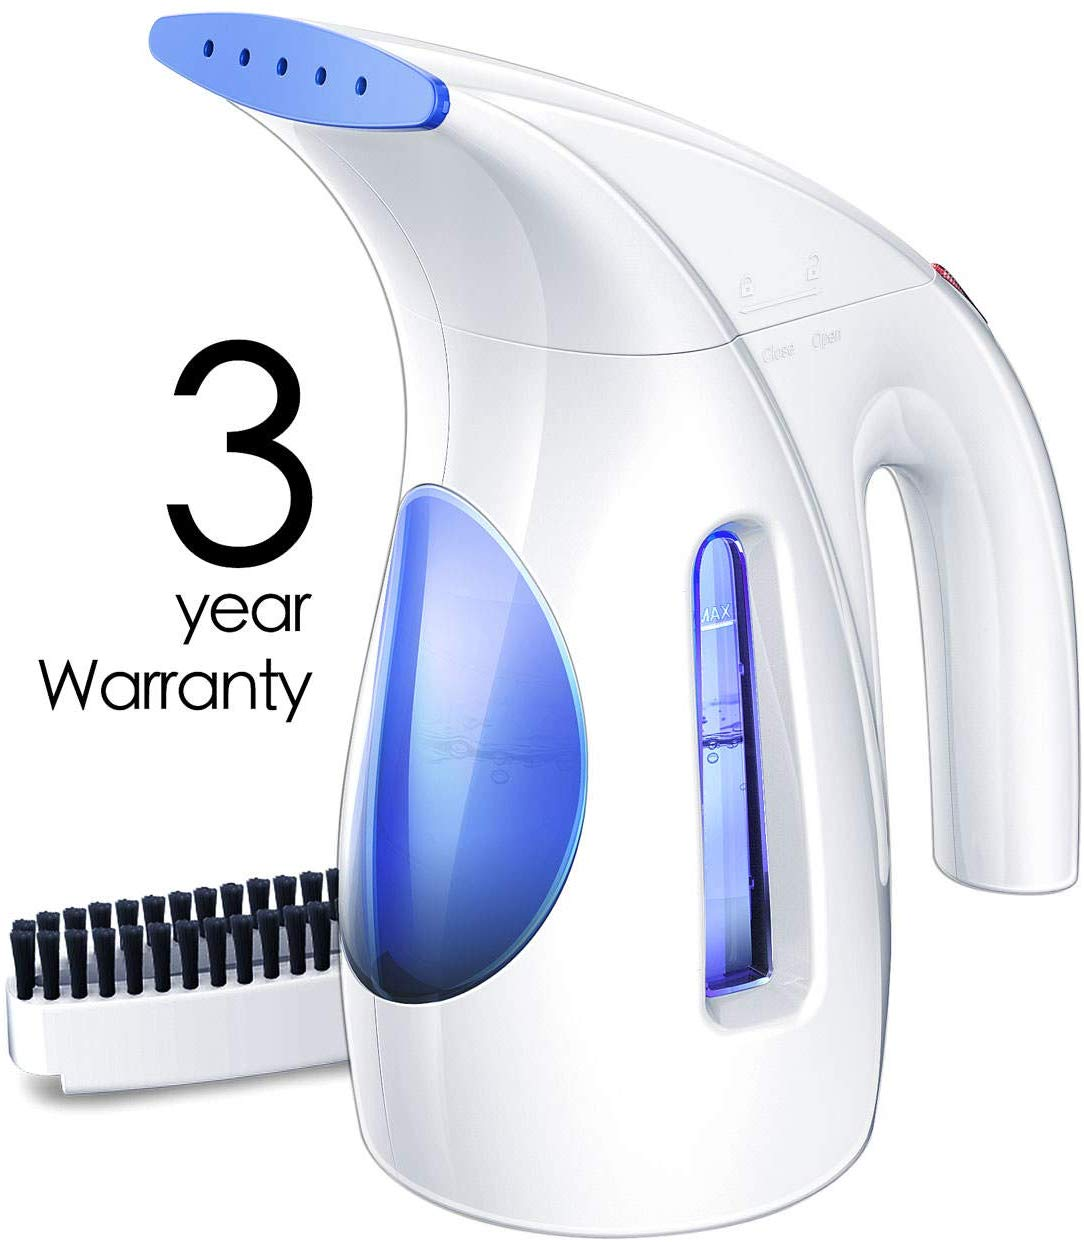 Hilife Steamer for Clothes